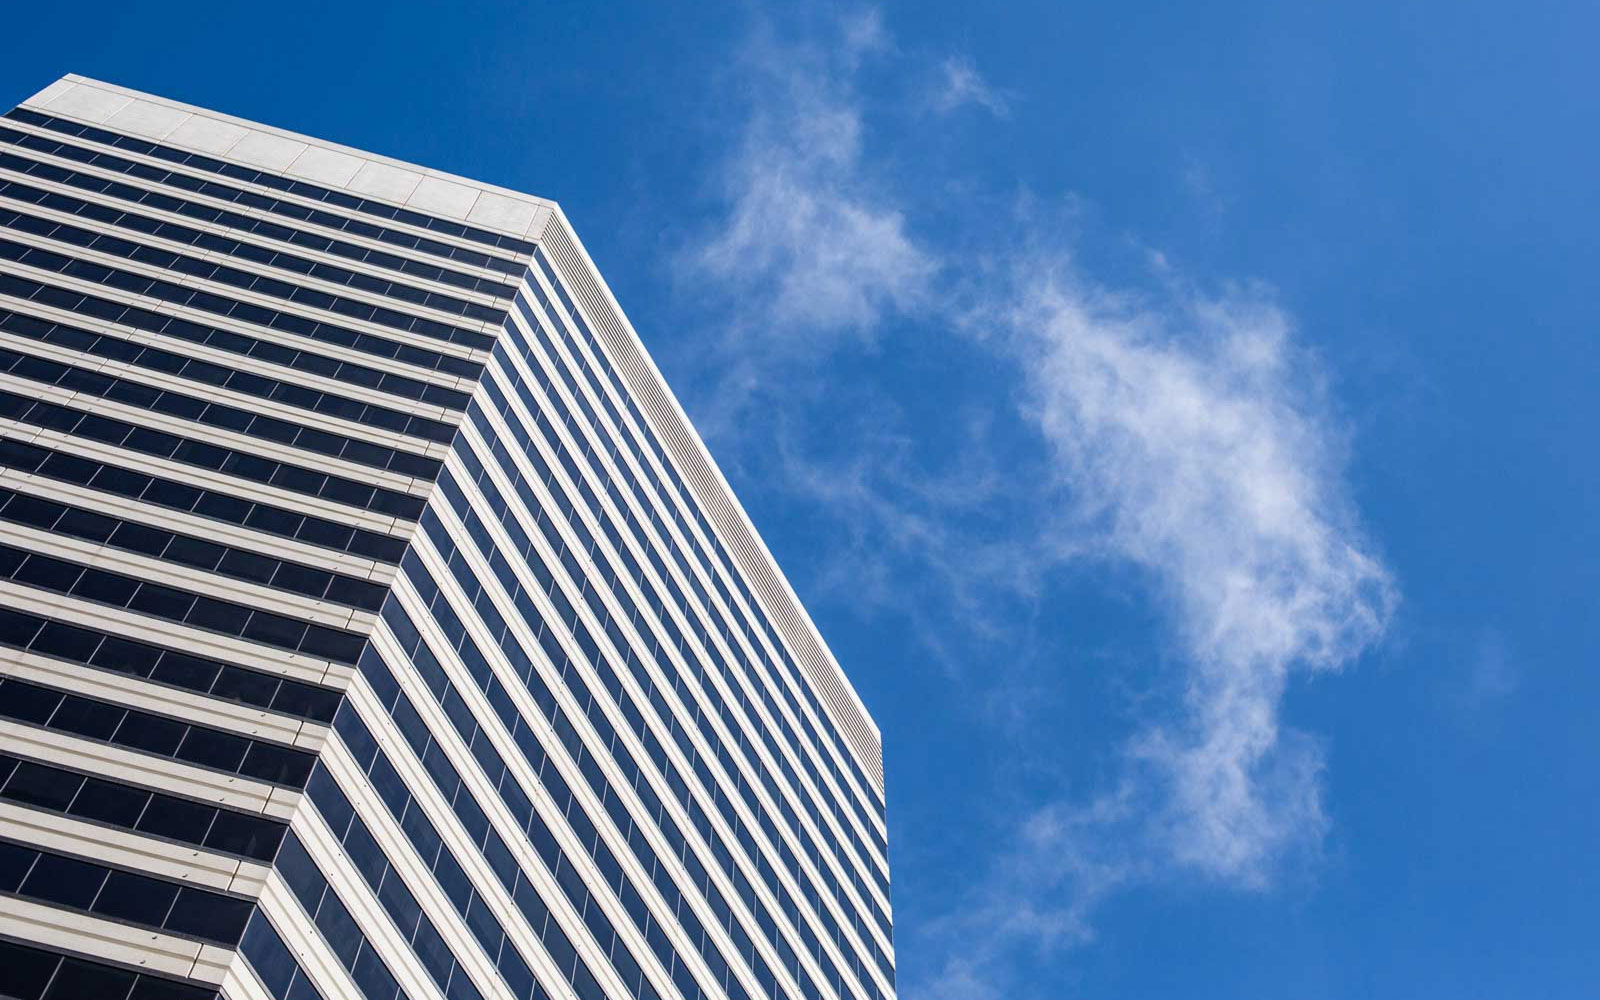 aaa_clean-skyscraper-view-from-below-against-blue-sky-and-clouds-picjumbo-com